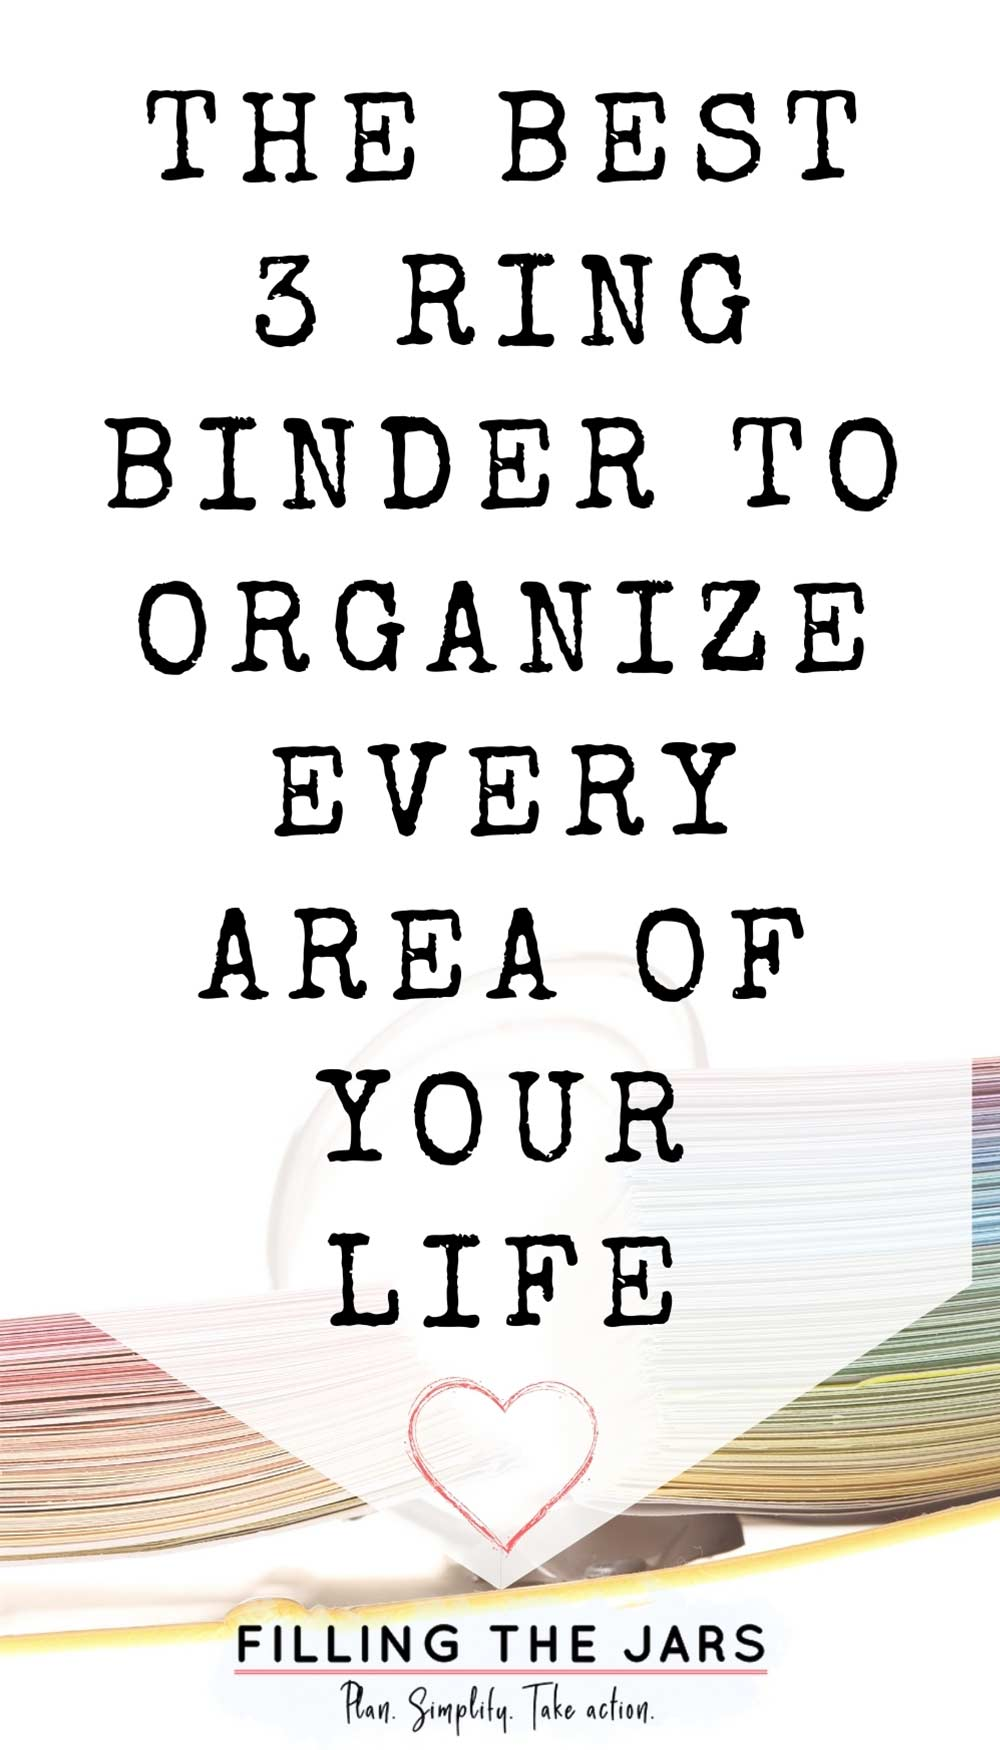 Text the best 3 ring binder to organize every area of your life on white background over image of end view of open 3 ring binder with colorful pages.